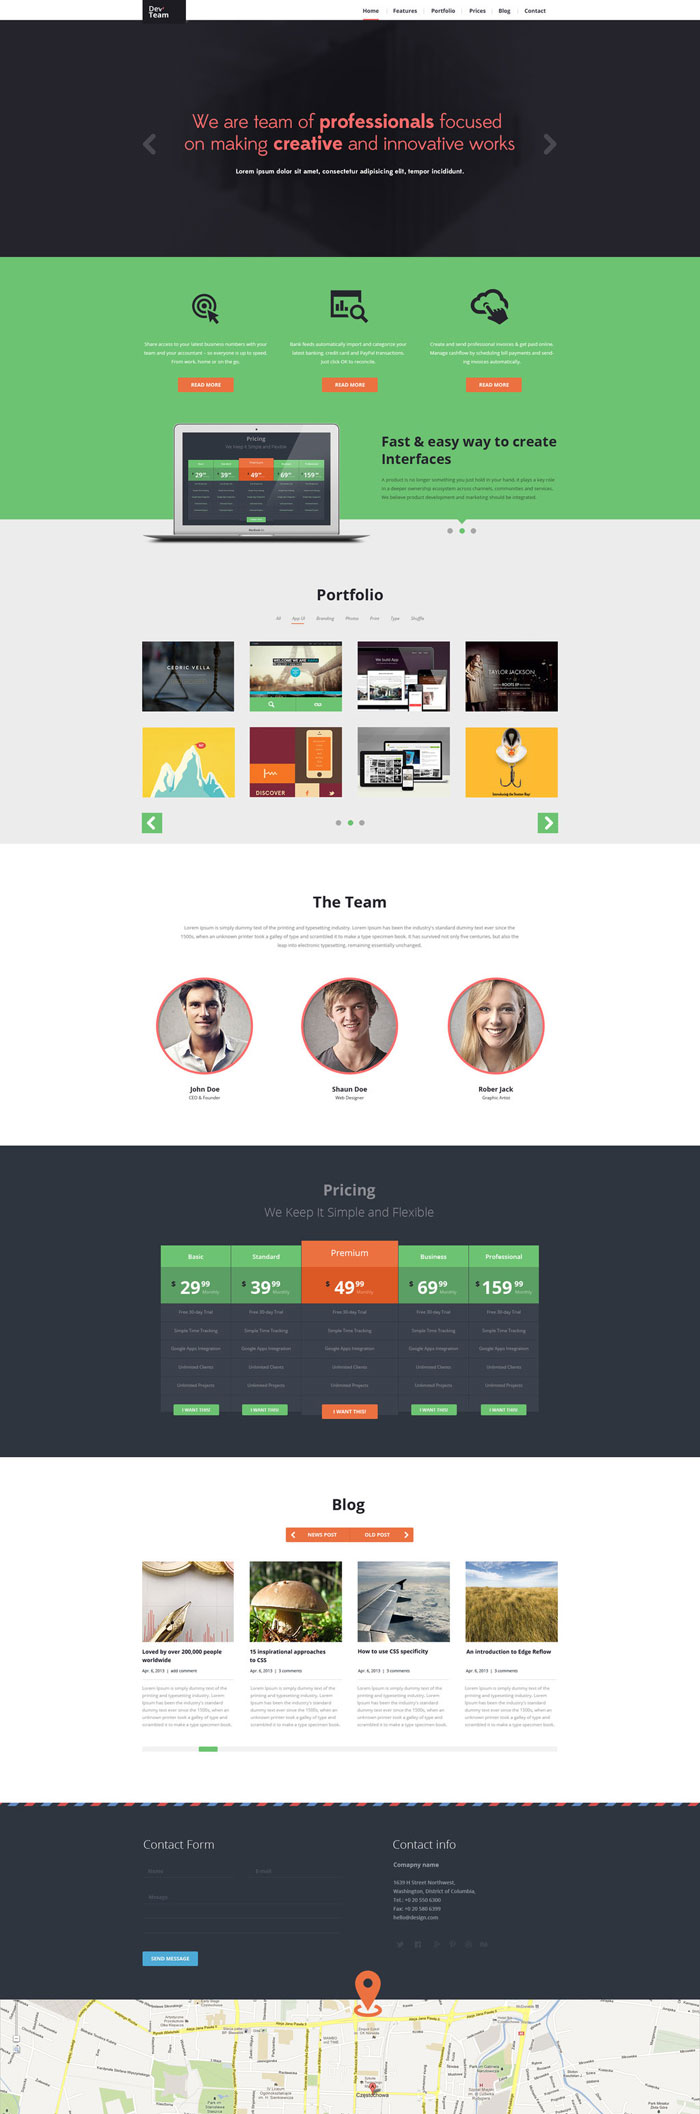 DevTeam Flat Web Design Inspiration